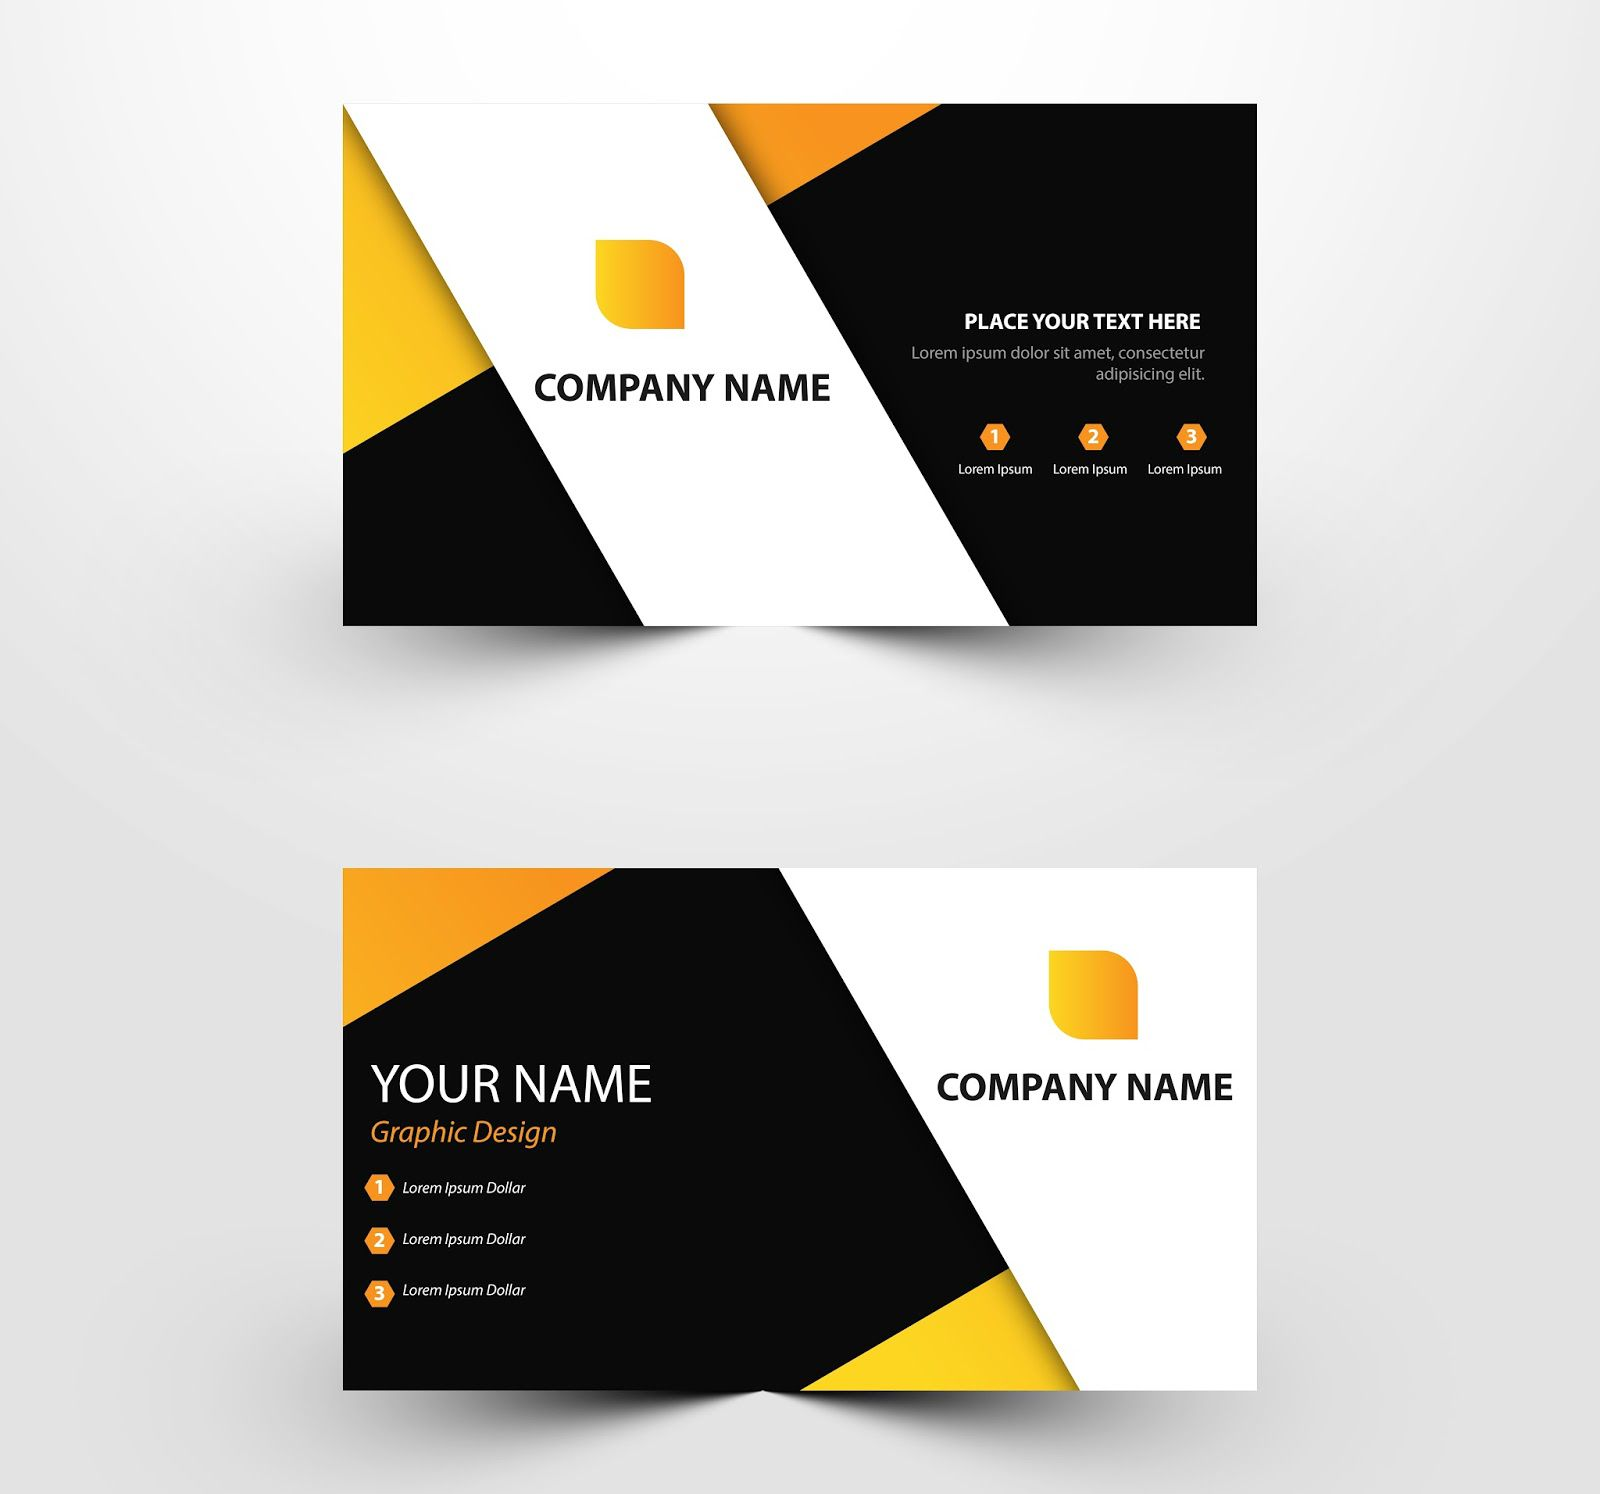 009 Awful Free Download Busines Card Template Highest Quality  Microsoft Word Photoshop Psd Double SidedFull